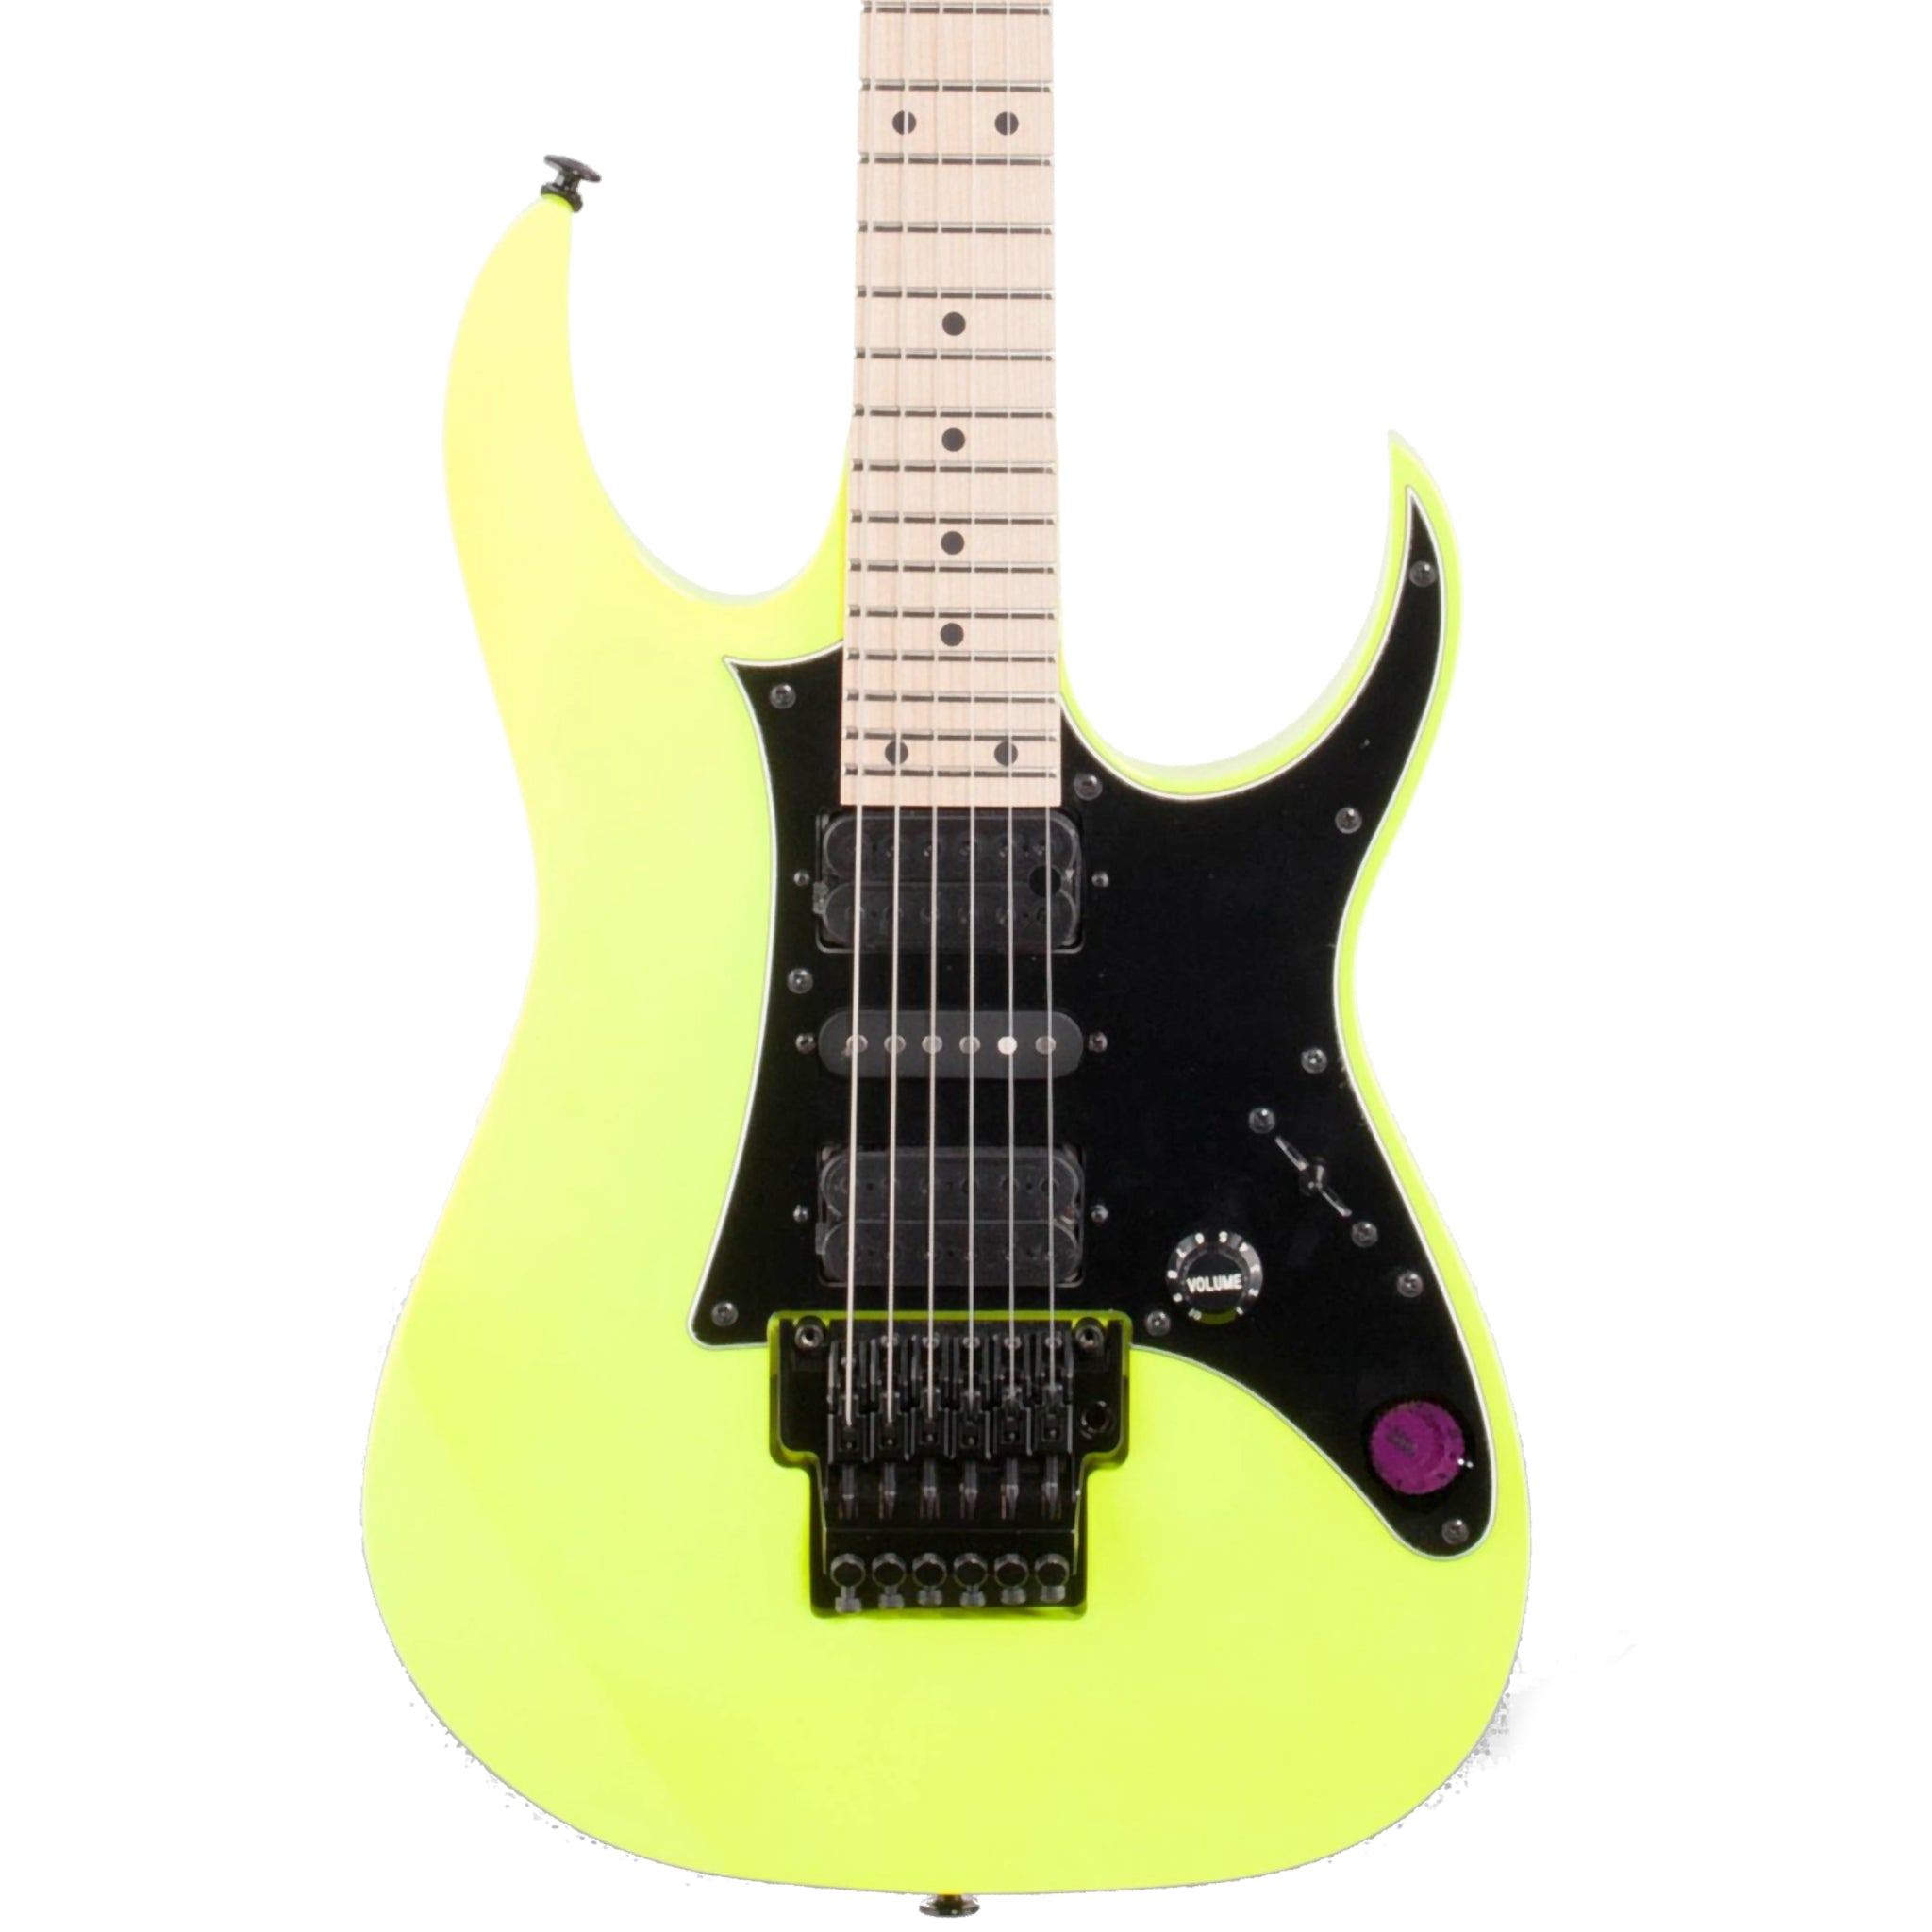 2018 Ibanez RG550 Genesis Collection - Desert Sun Yellow